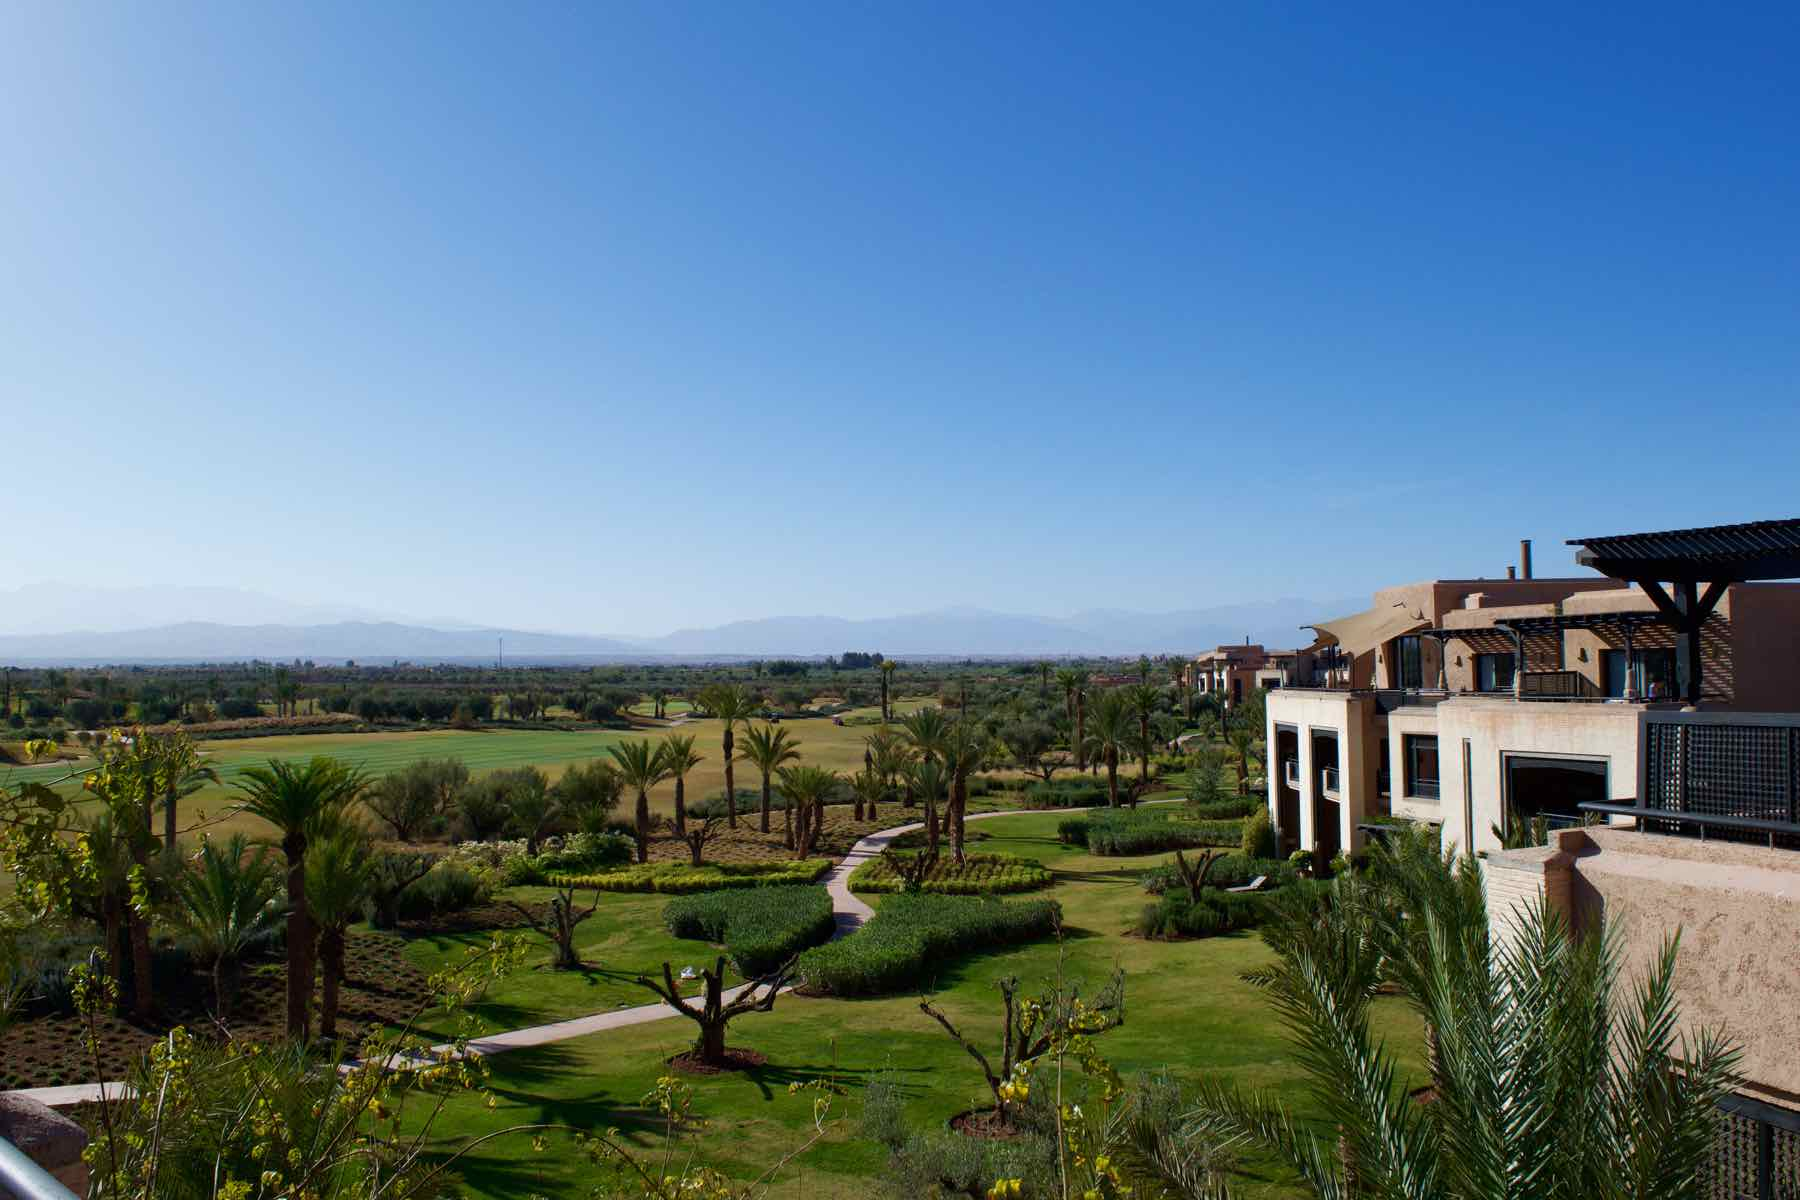 View of the golf course and gardens at Royal Palm Hotel Marrakech